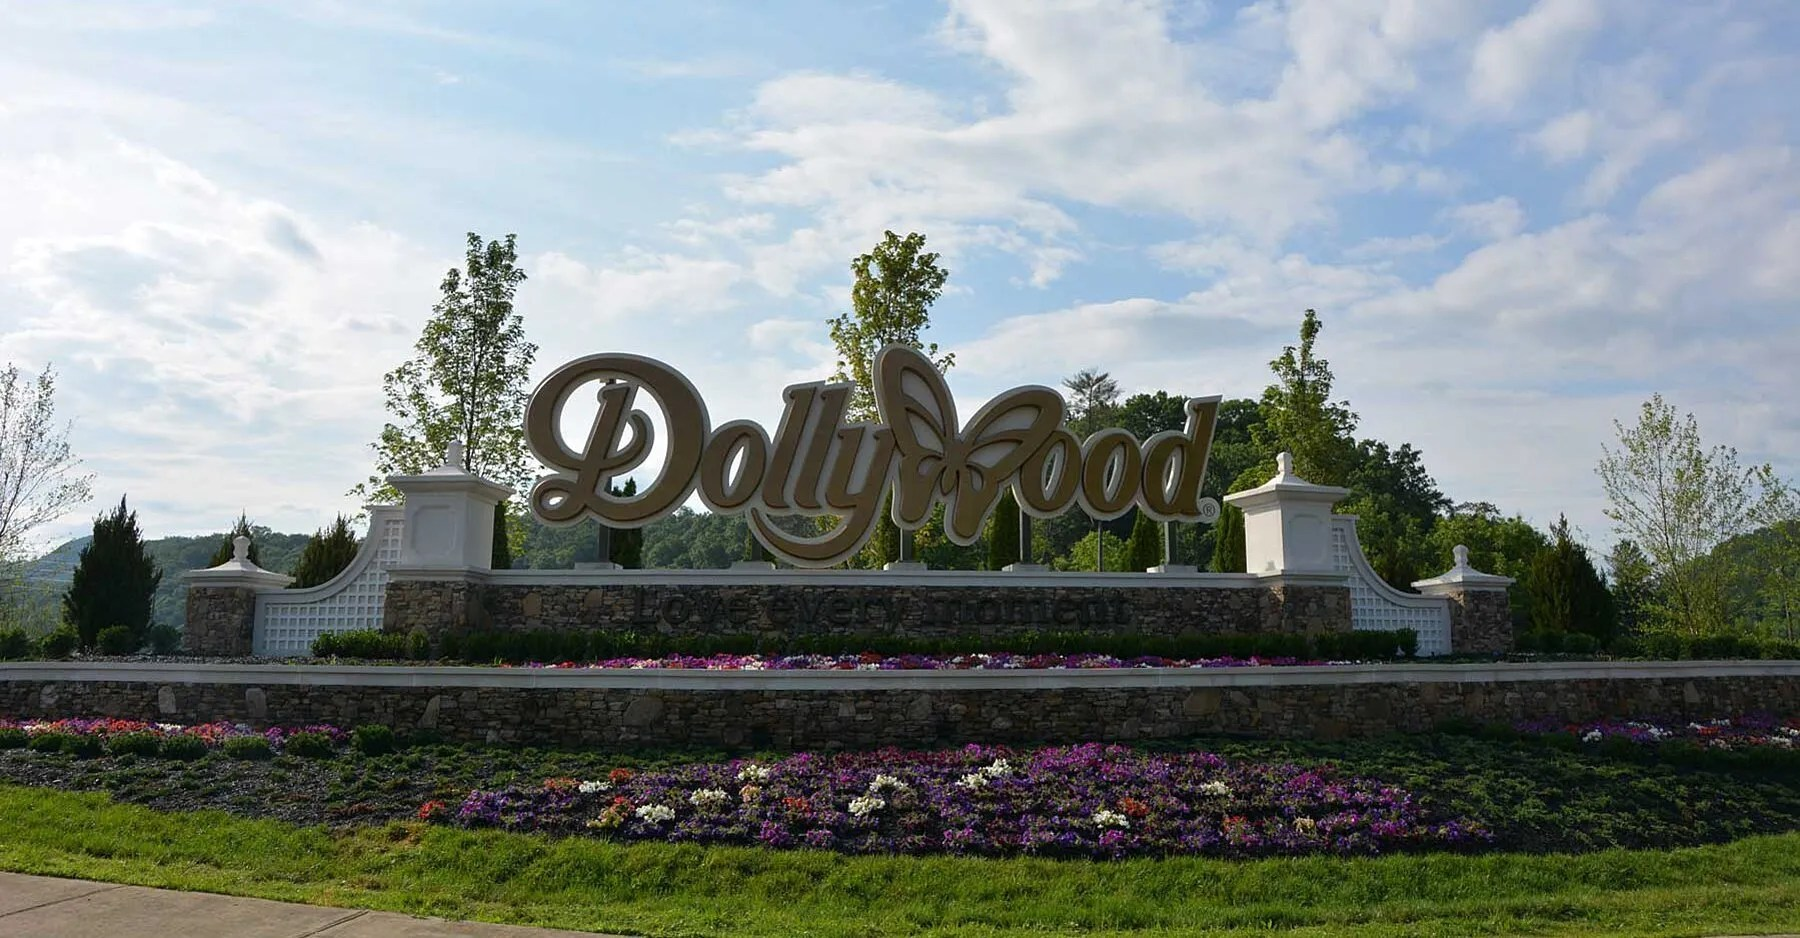 Dollywood's Annual Homeschool Days Let Students Learn in the Theme Park